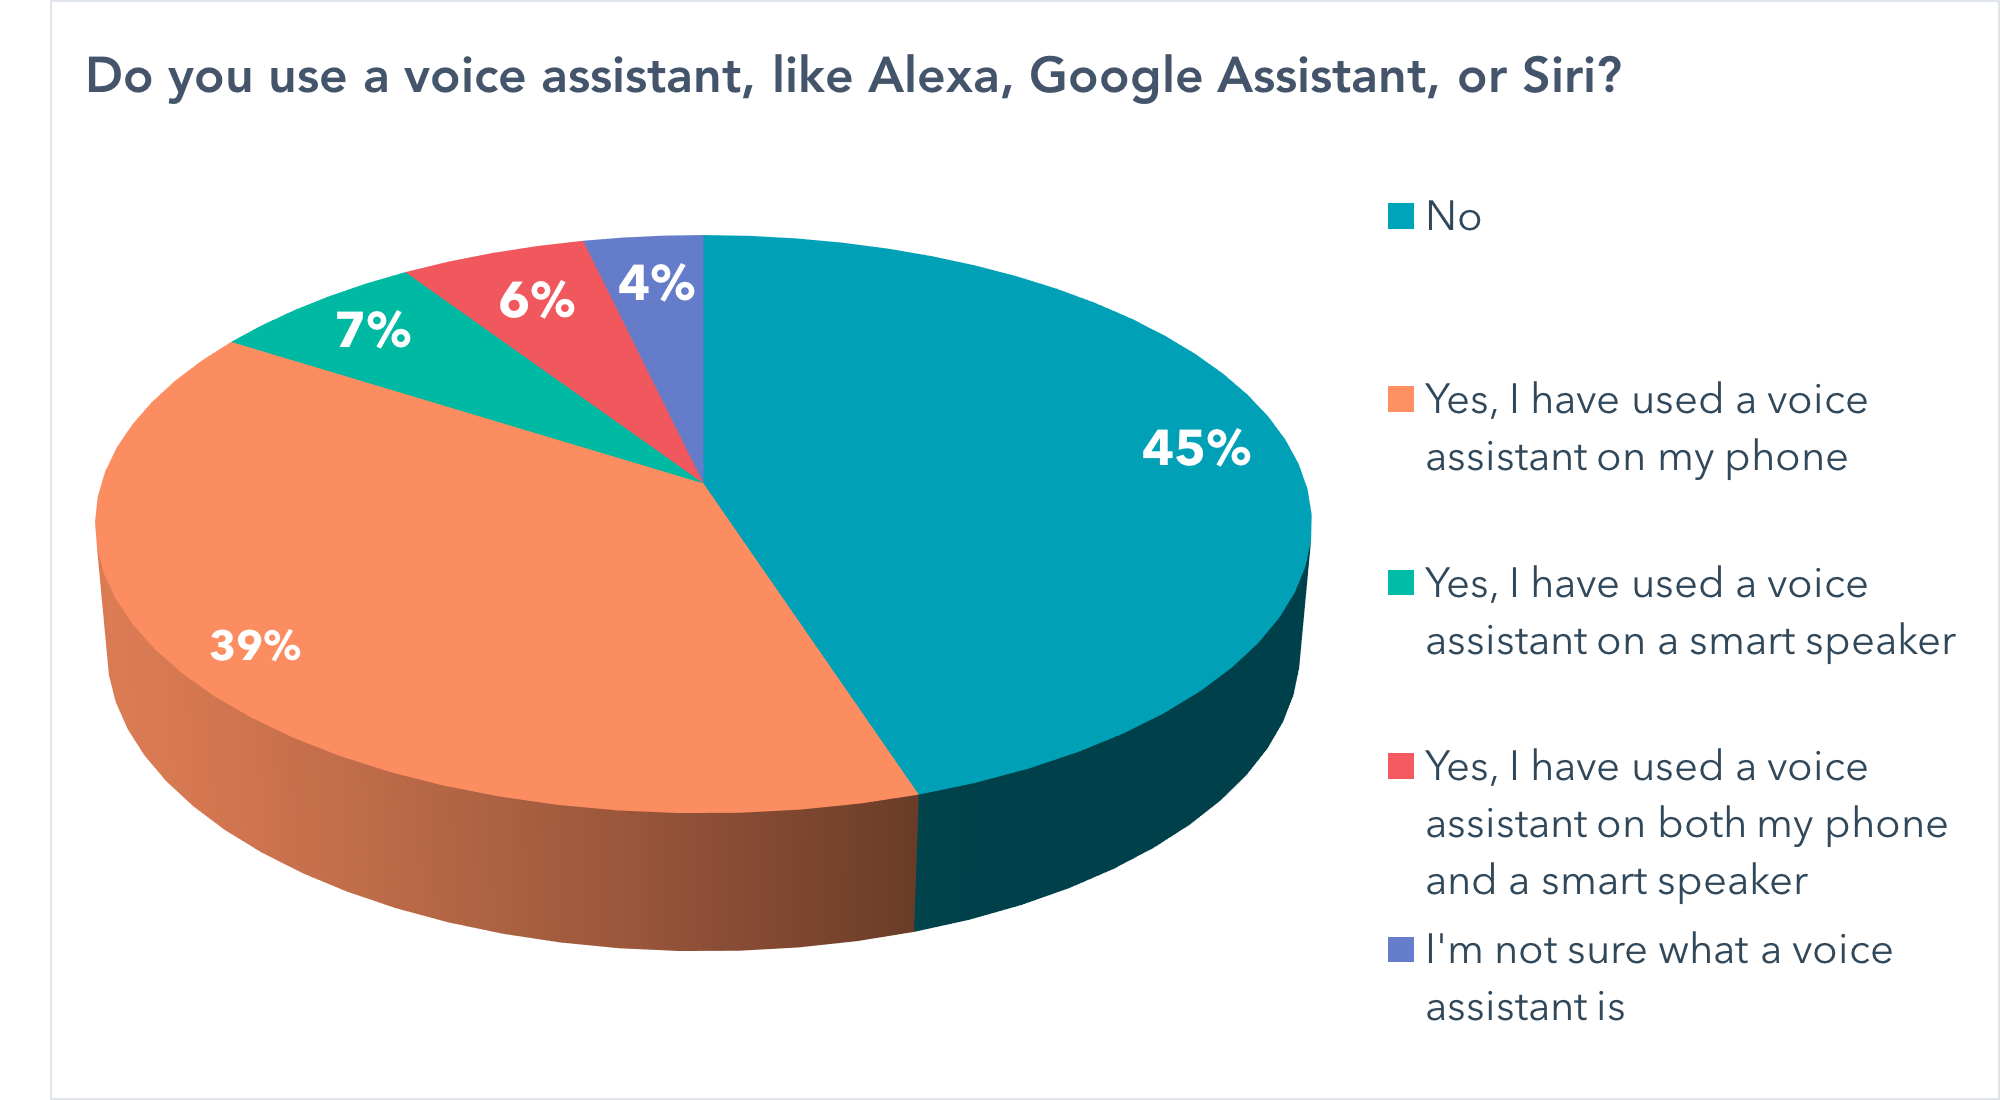 Do you use a voice assistant, like Alexa, Google Assistant, or Siri?